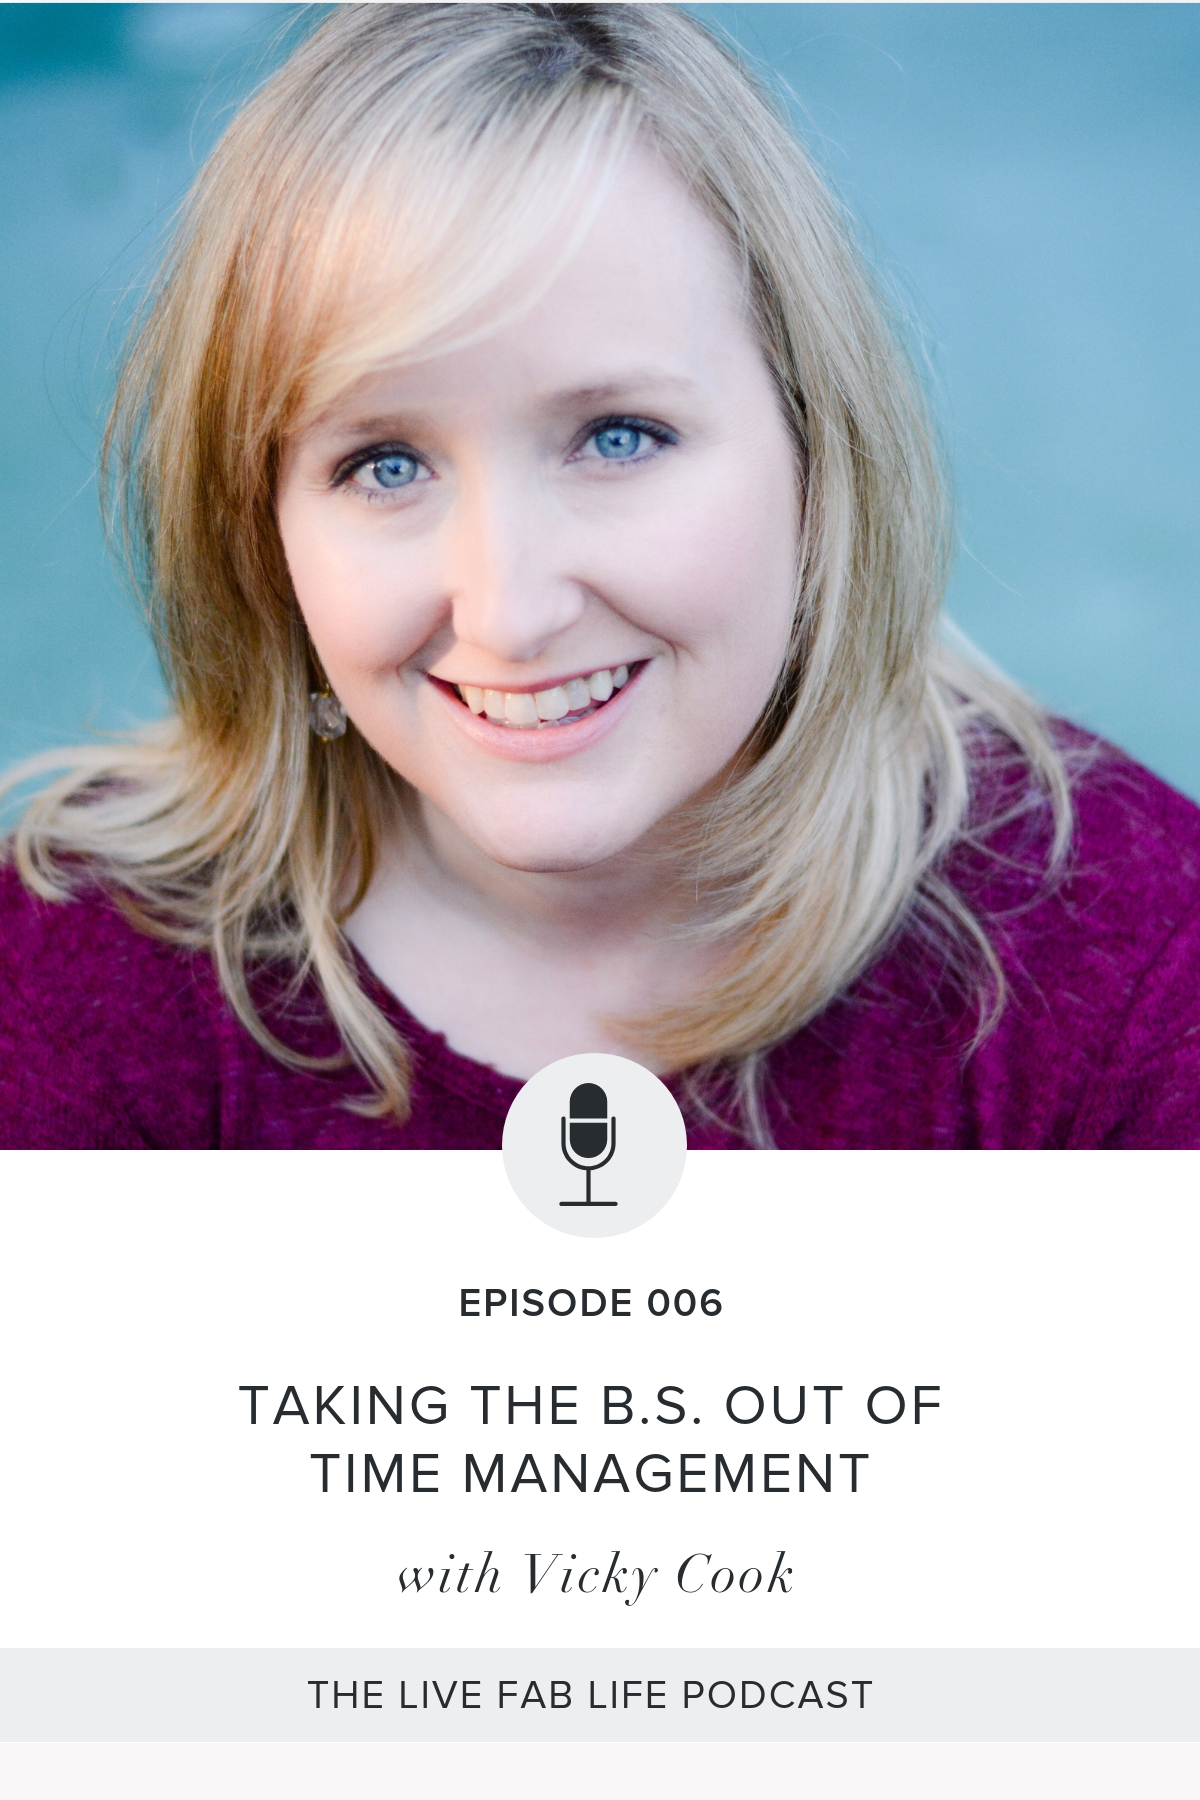 Episode 006: Taking the BS Out of Time Management with Vicky Cook